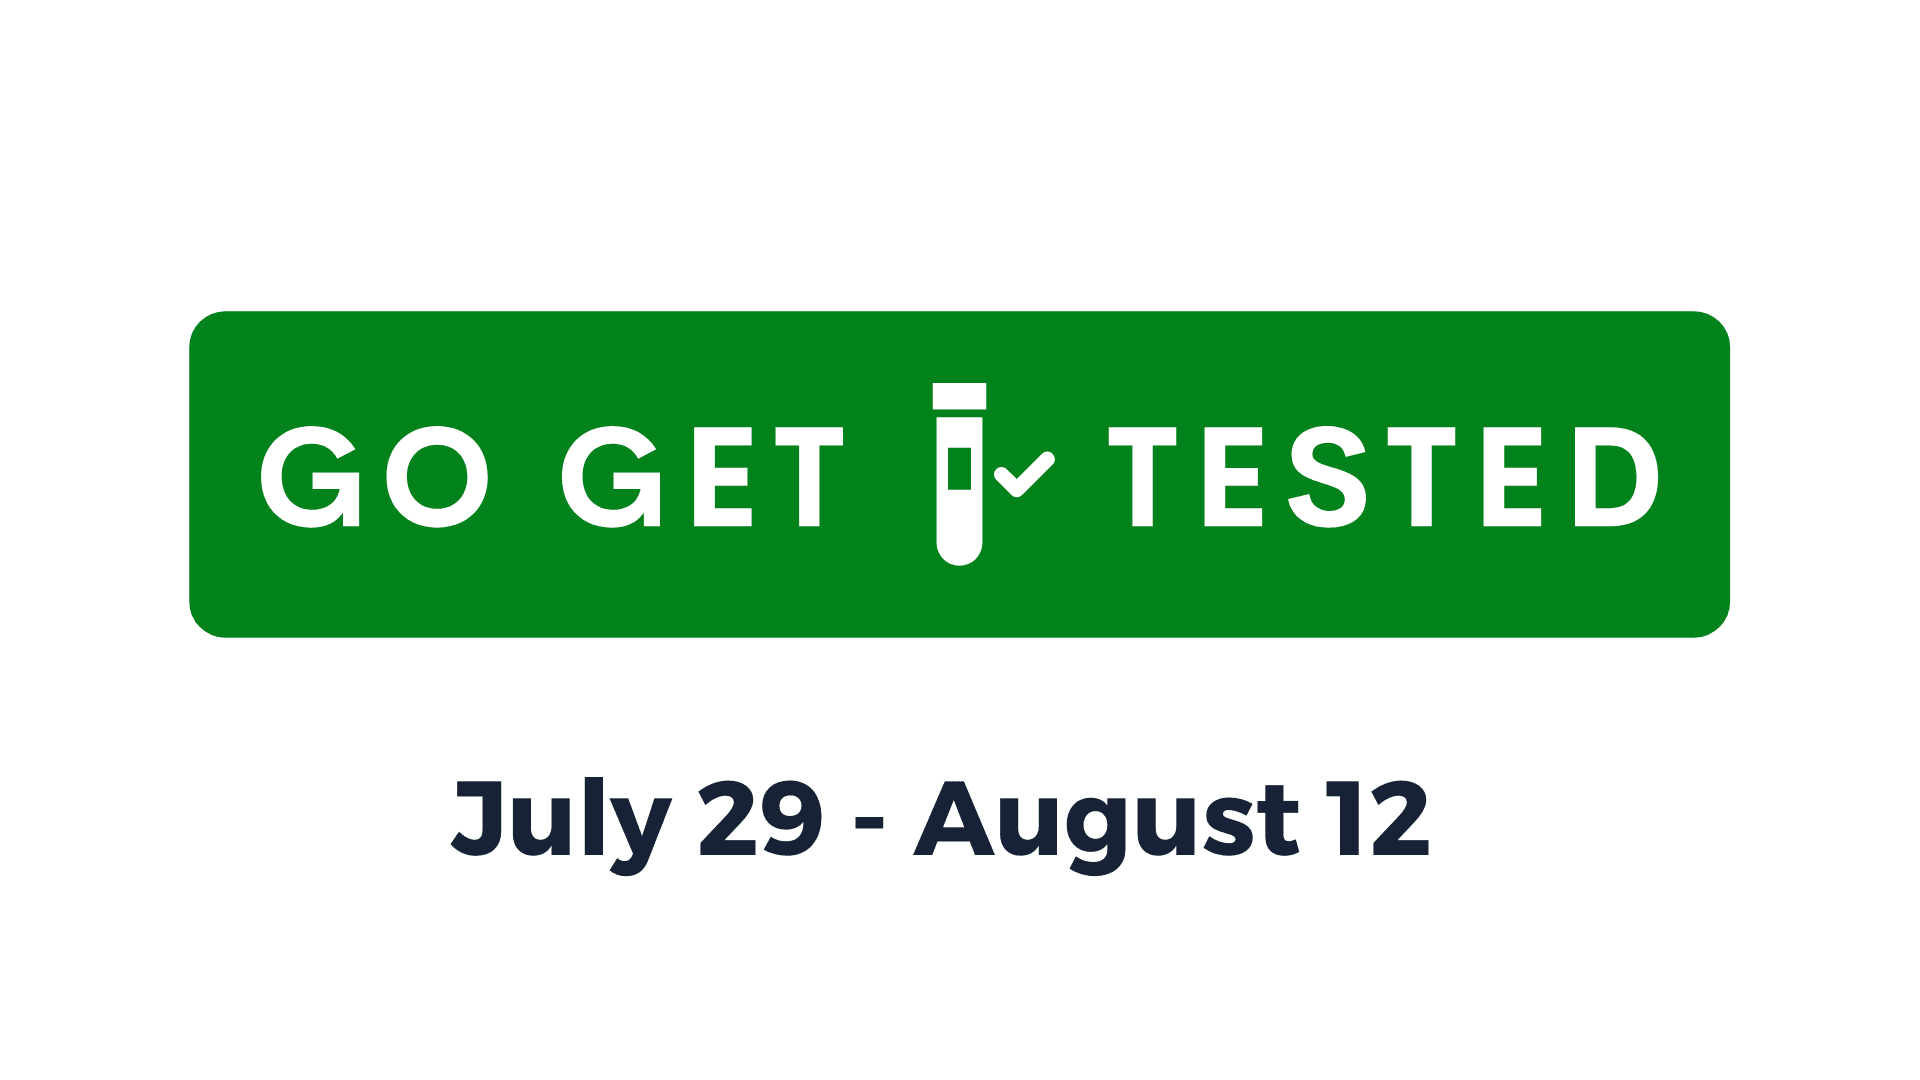 Go Get Tested (1920 x 1080)